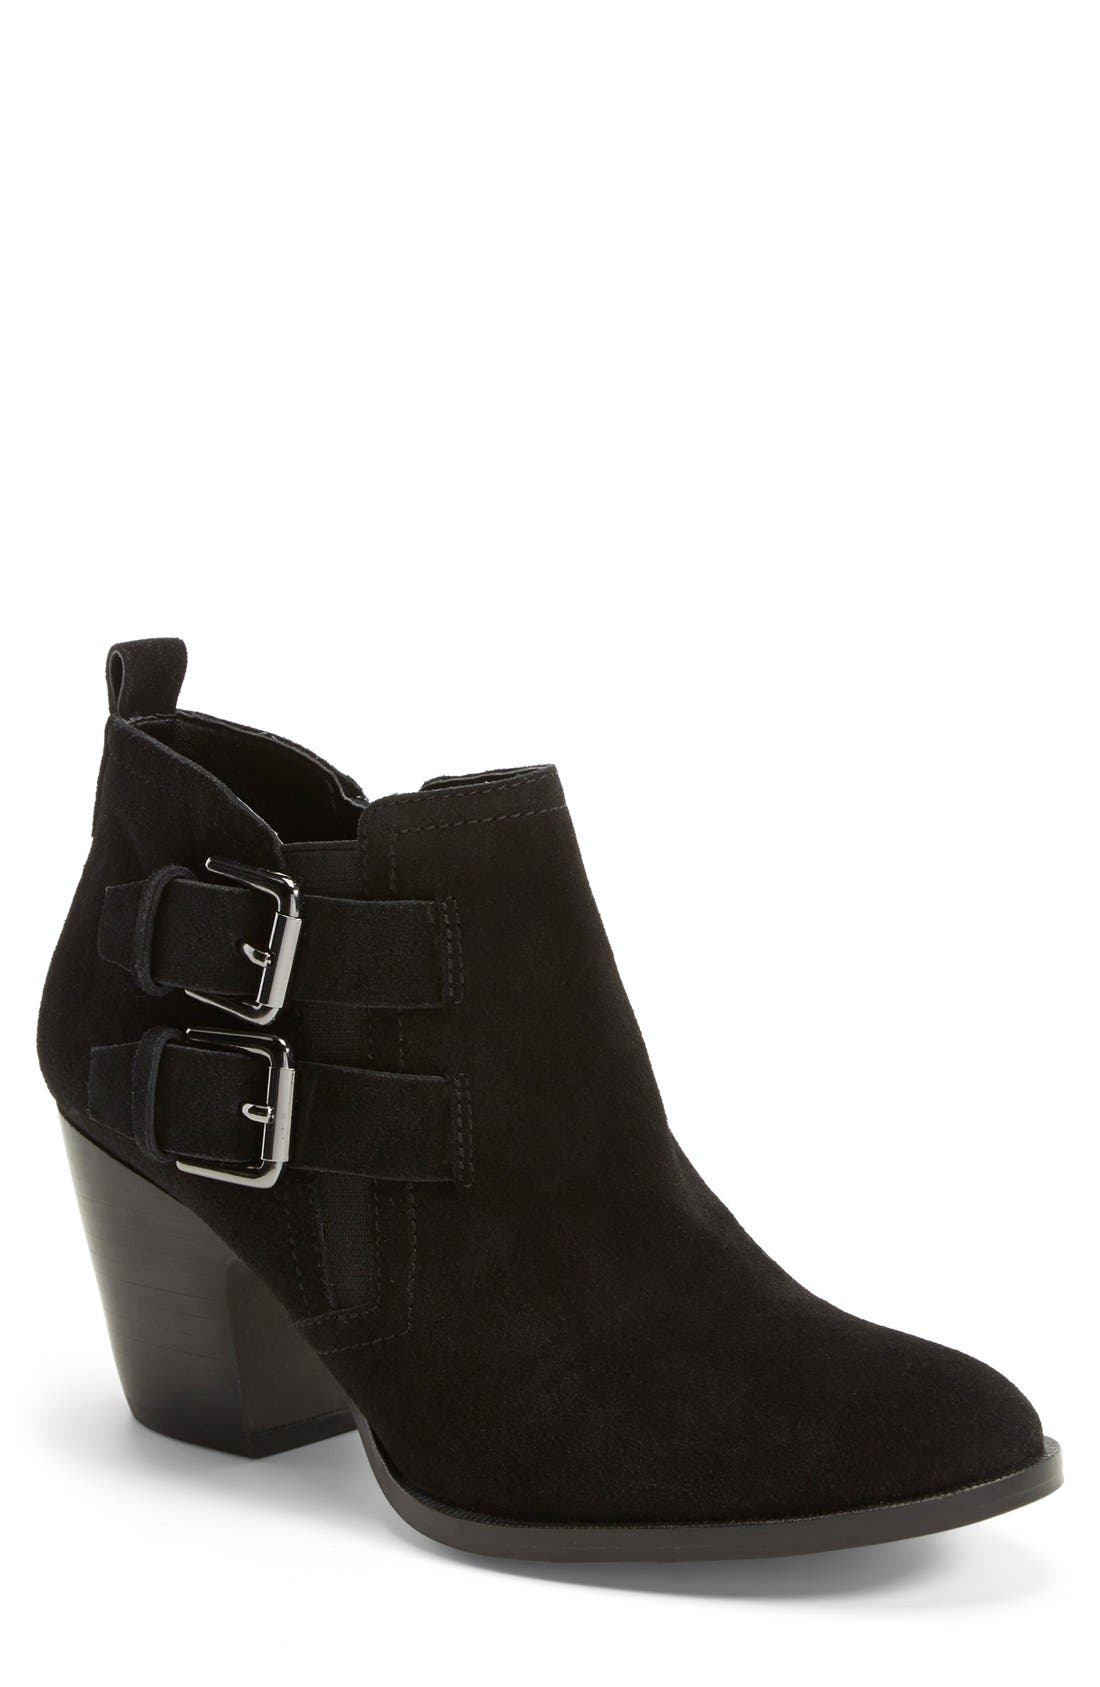 Alternate Image 1 Selected - Ivanka Trump 'Taren' Suede Bootie (Women)